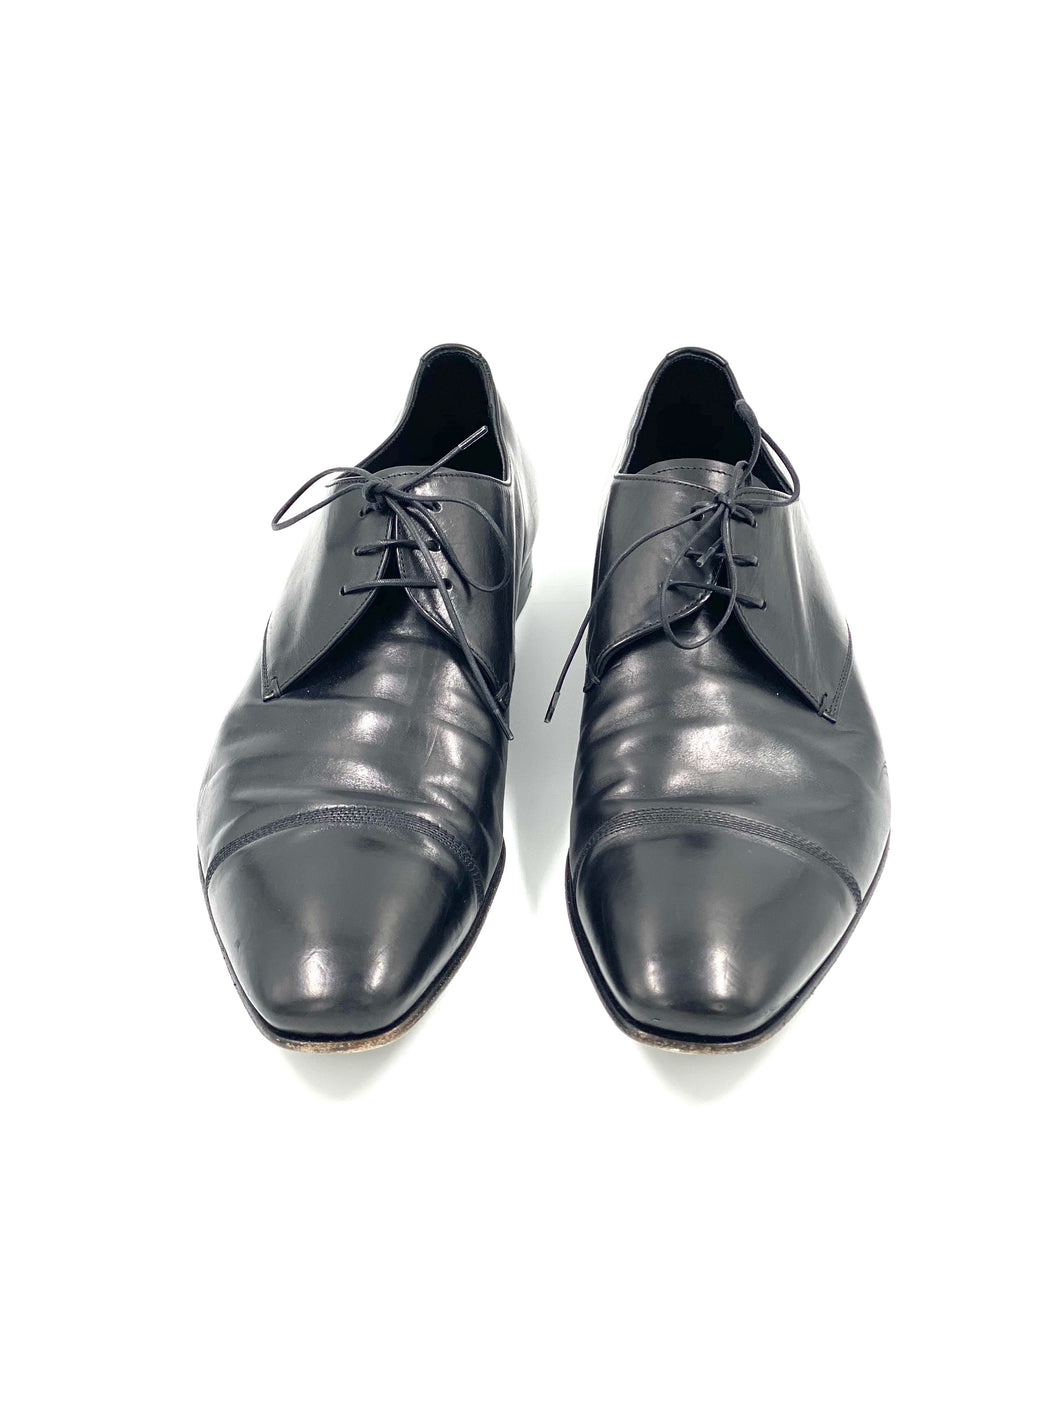 Prada Cap Toe Oxfords